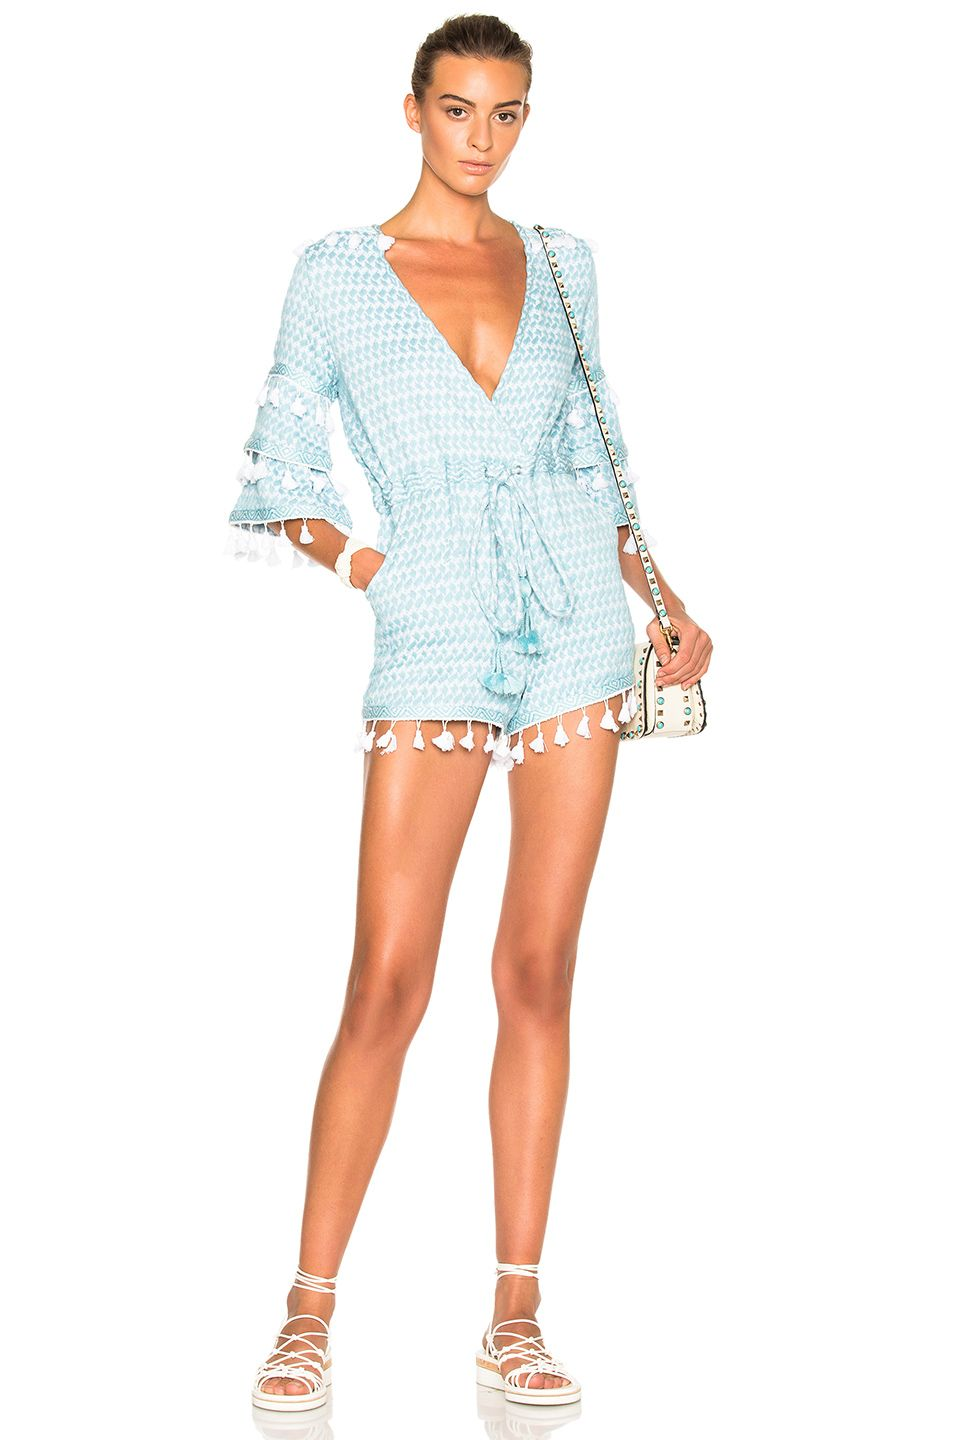 4409283a3929 Image 1 of Dodo Bar Or FWRD Exclusive Ashtar Romper in Blue